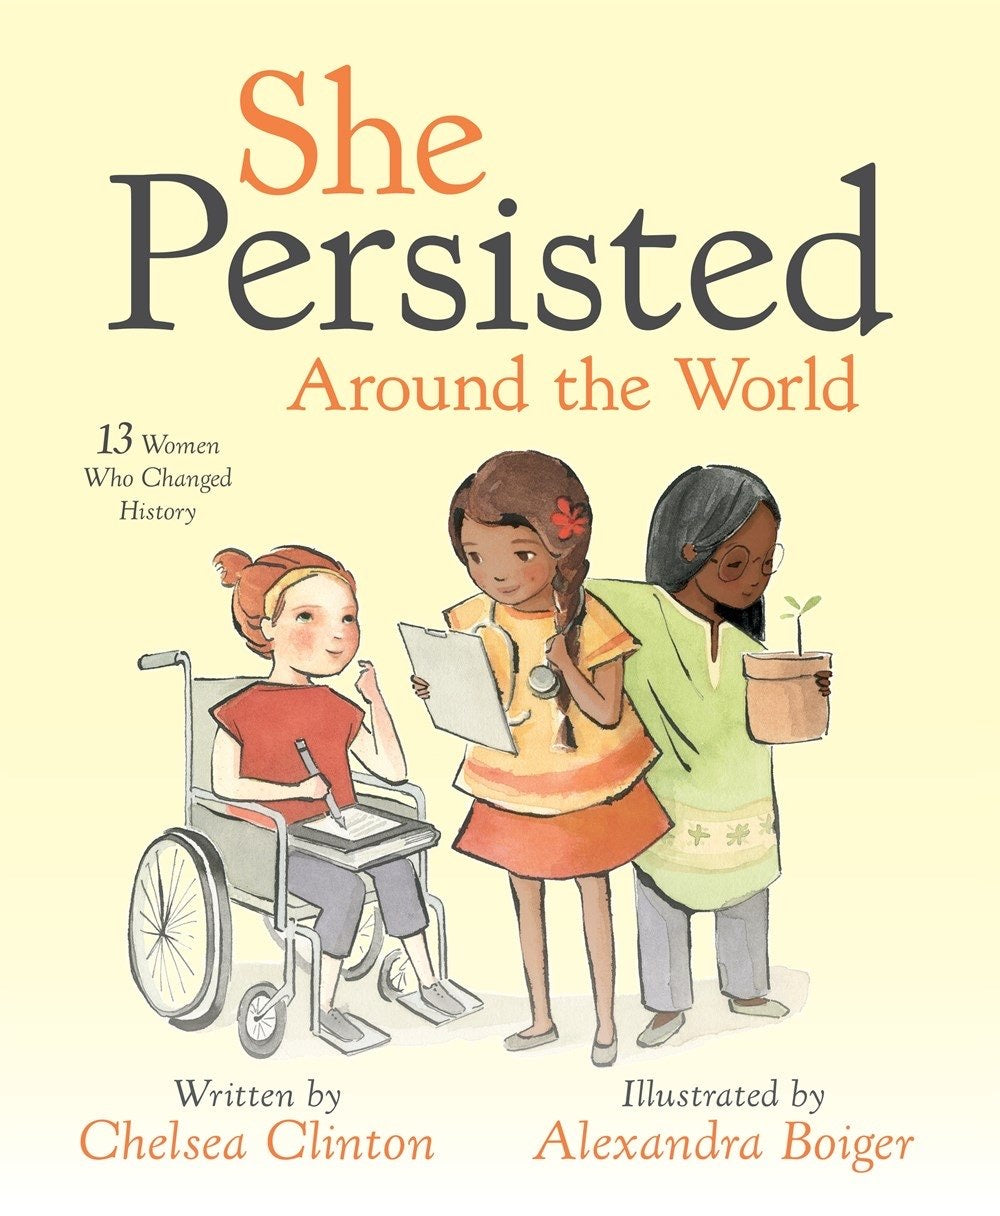 She Persisted Around he World